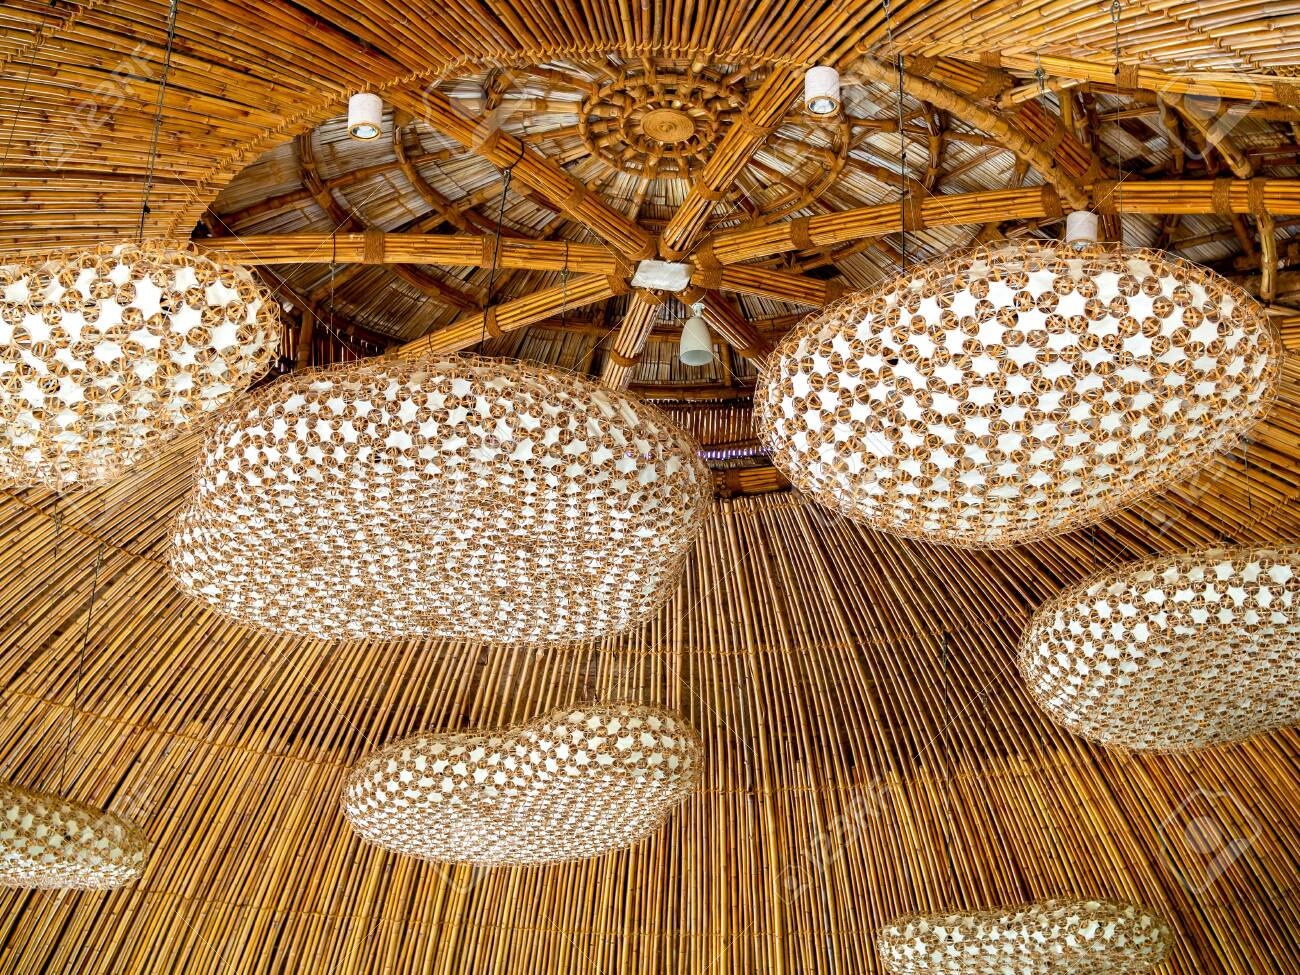 Beautiful Modern Hand Woven Bamboo Ceiling Light Decoration On Stock Photo Picture And Royalty Free Image Image 130785947